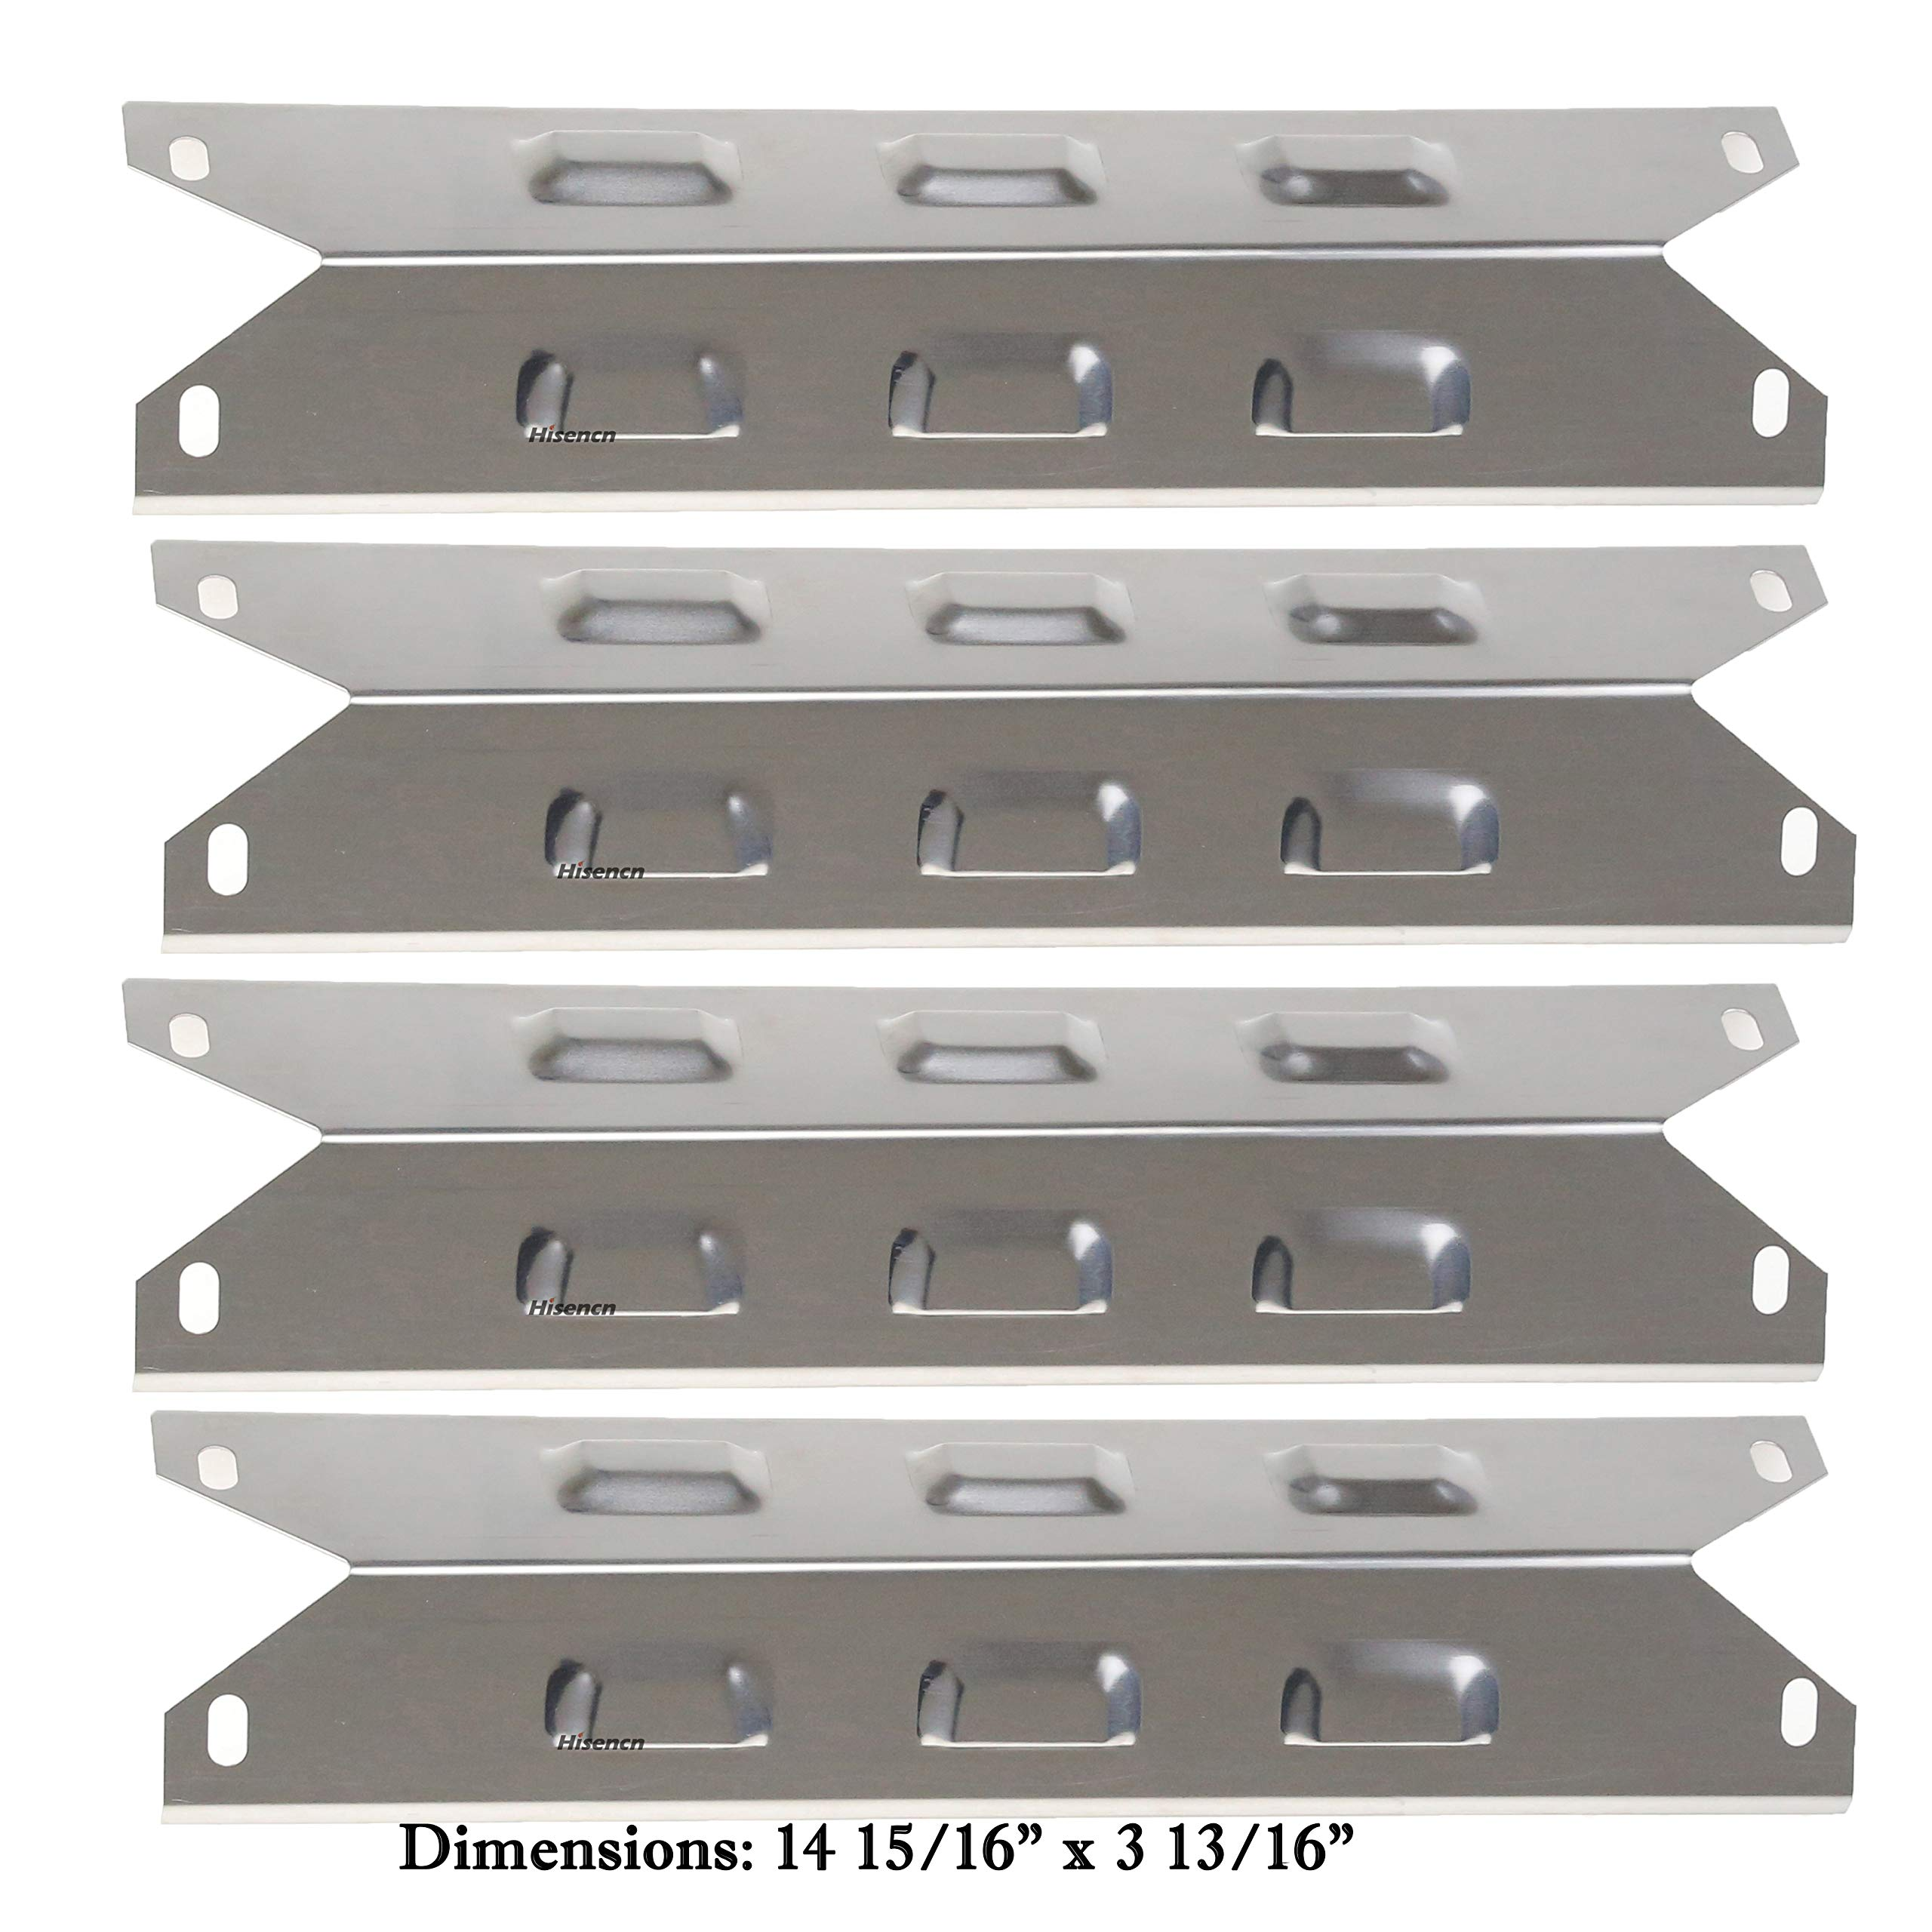 Hisencn BBQ Stainless Burner Tube, Heat Plates Tent Shield, Burner Cover, Adjust Crossover Tube Replacement for BBQ-pro 146.2367631, Kenmore 146.10016510, 146.16198211, 146.16197210 Gas Grill Models by Hisencn (Image #5)